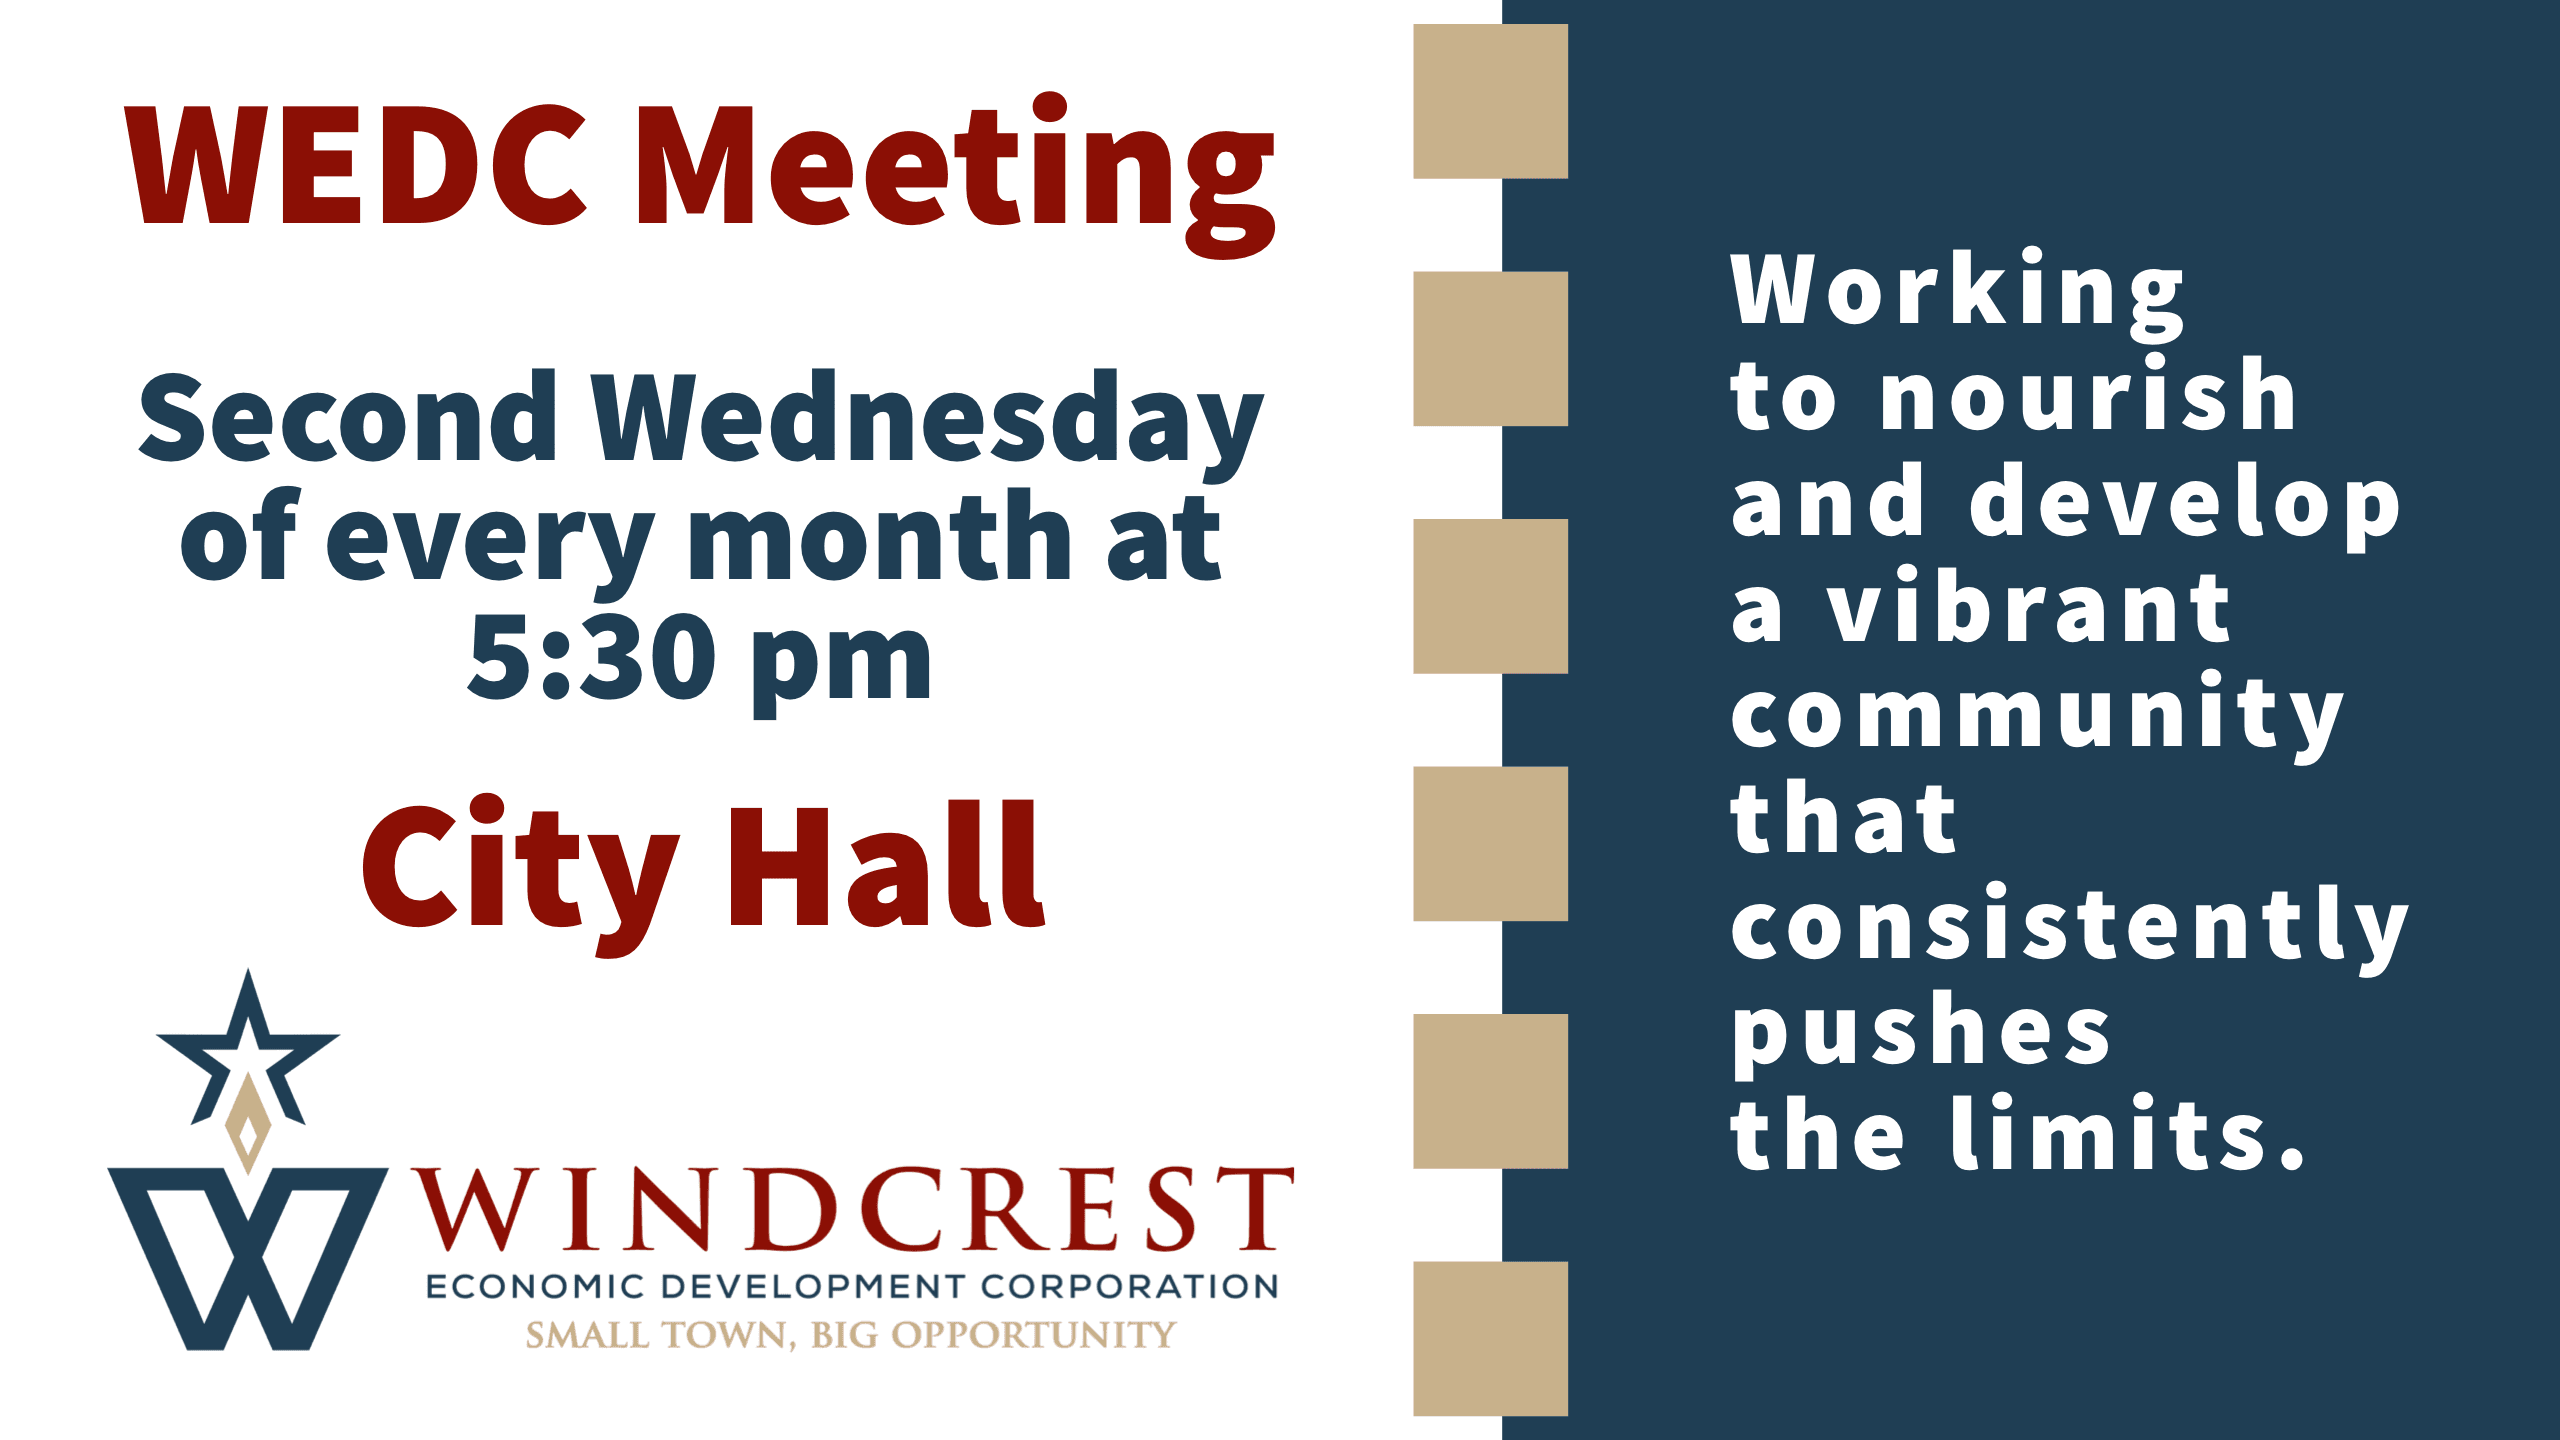 wedc-board-meeting-2nd-wednesday-of-month-at-5:30pm